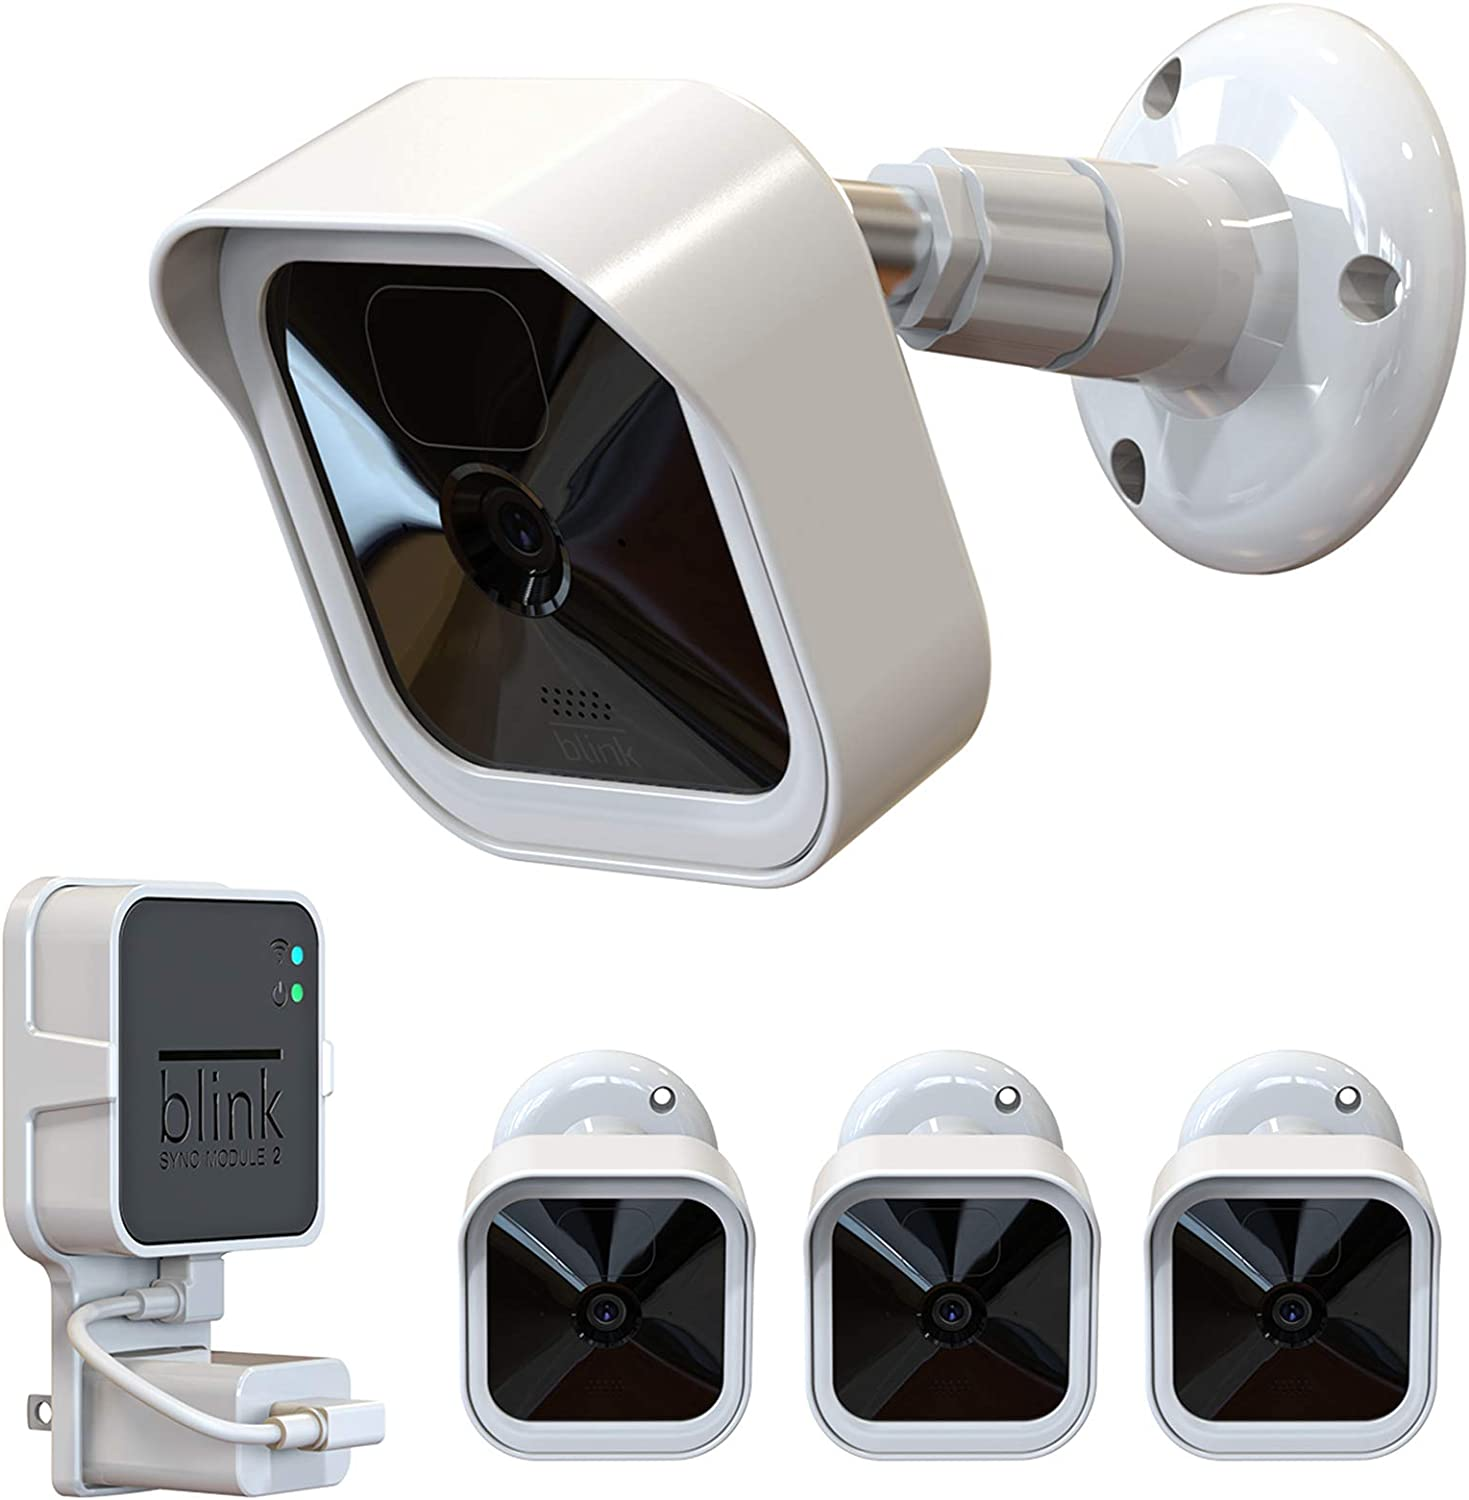 Blink Outdoor Camera Mount, Weatherproof Protective Cover and 360 Degree Adjustable Mount with Blink Sync Module 2 Outlet Mount for All-New Blink Outdoor Indoor Security Camera System (White, 3 Pack)